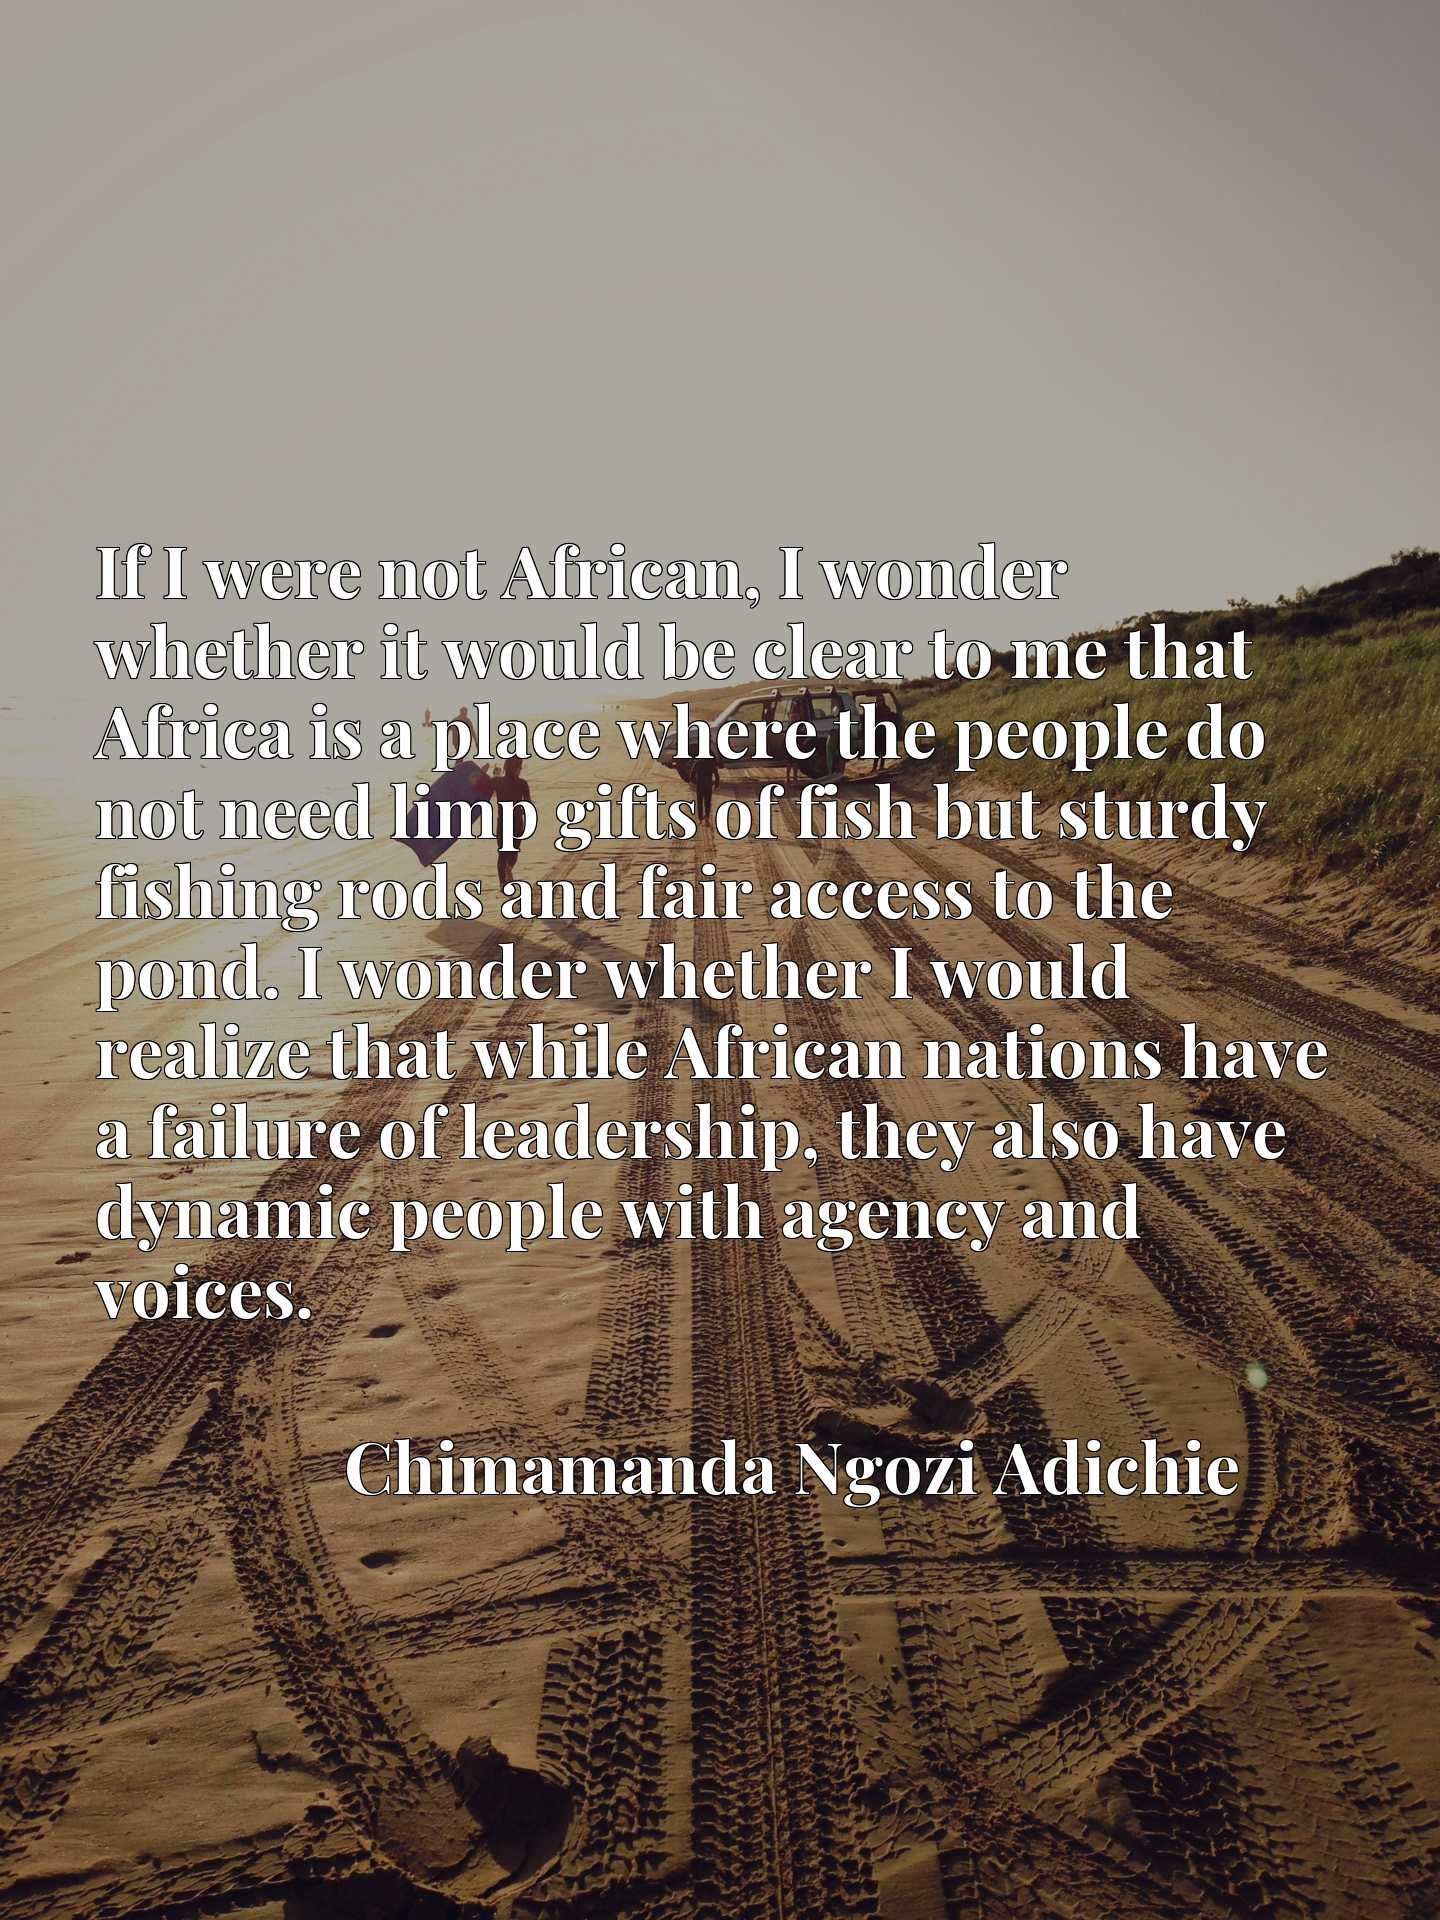 If I were not African, I wonder whether it would be clear to me that Africa is a place where the people do not need limp gifts of fish but sturdy fishing rods and fair access to the pond. I wonder whether I would realize that while African nations have a failure of leadership, they also have dynamic people with agency and voices.